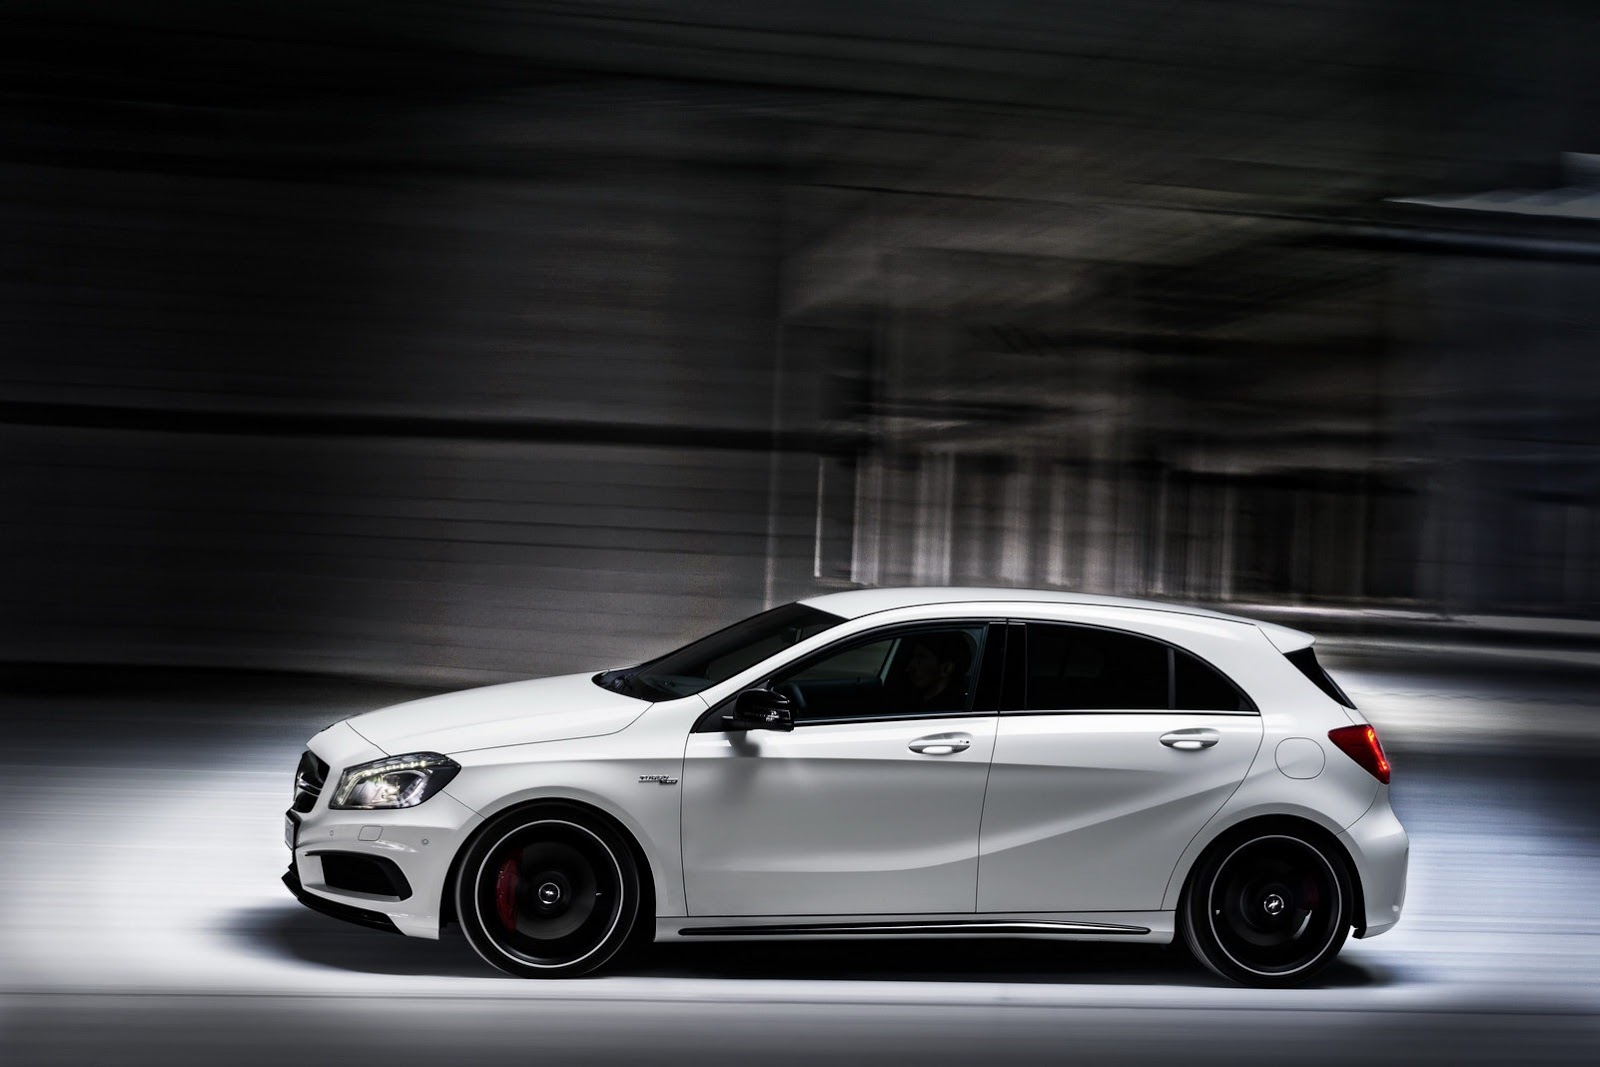 Mercedes A45 AMG - Side Profile